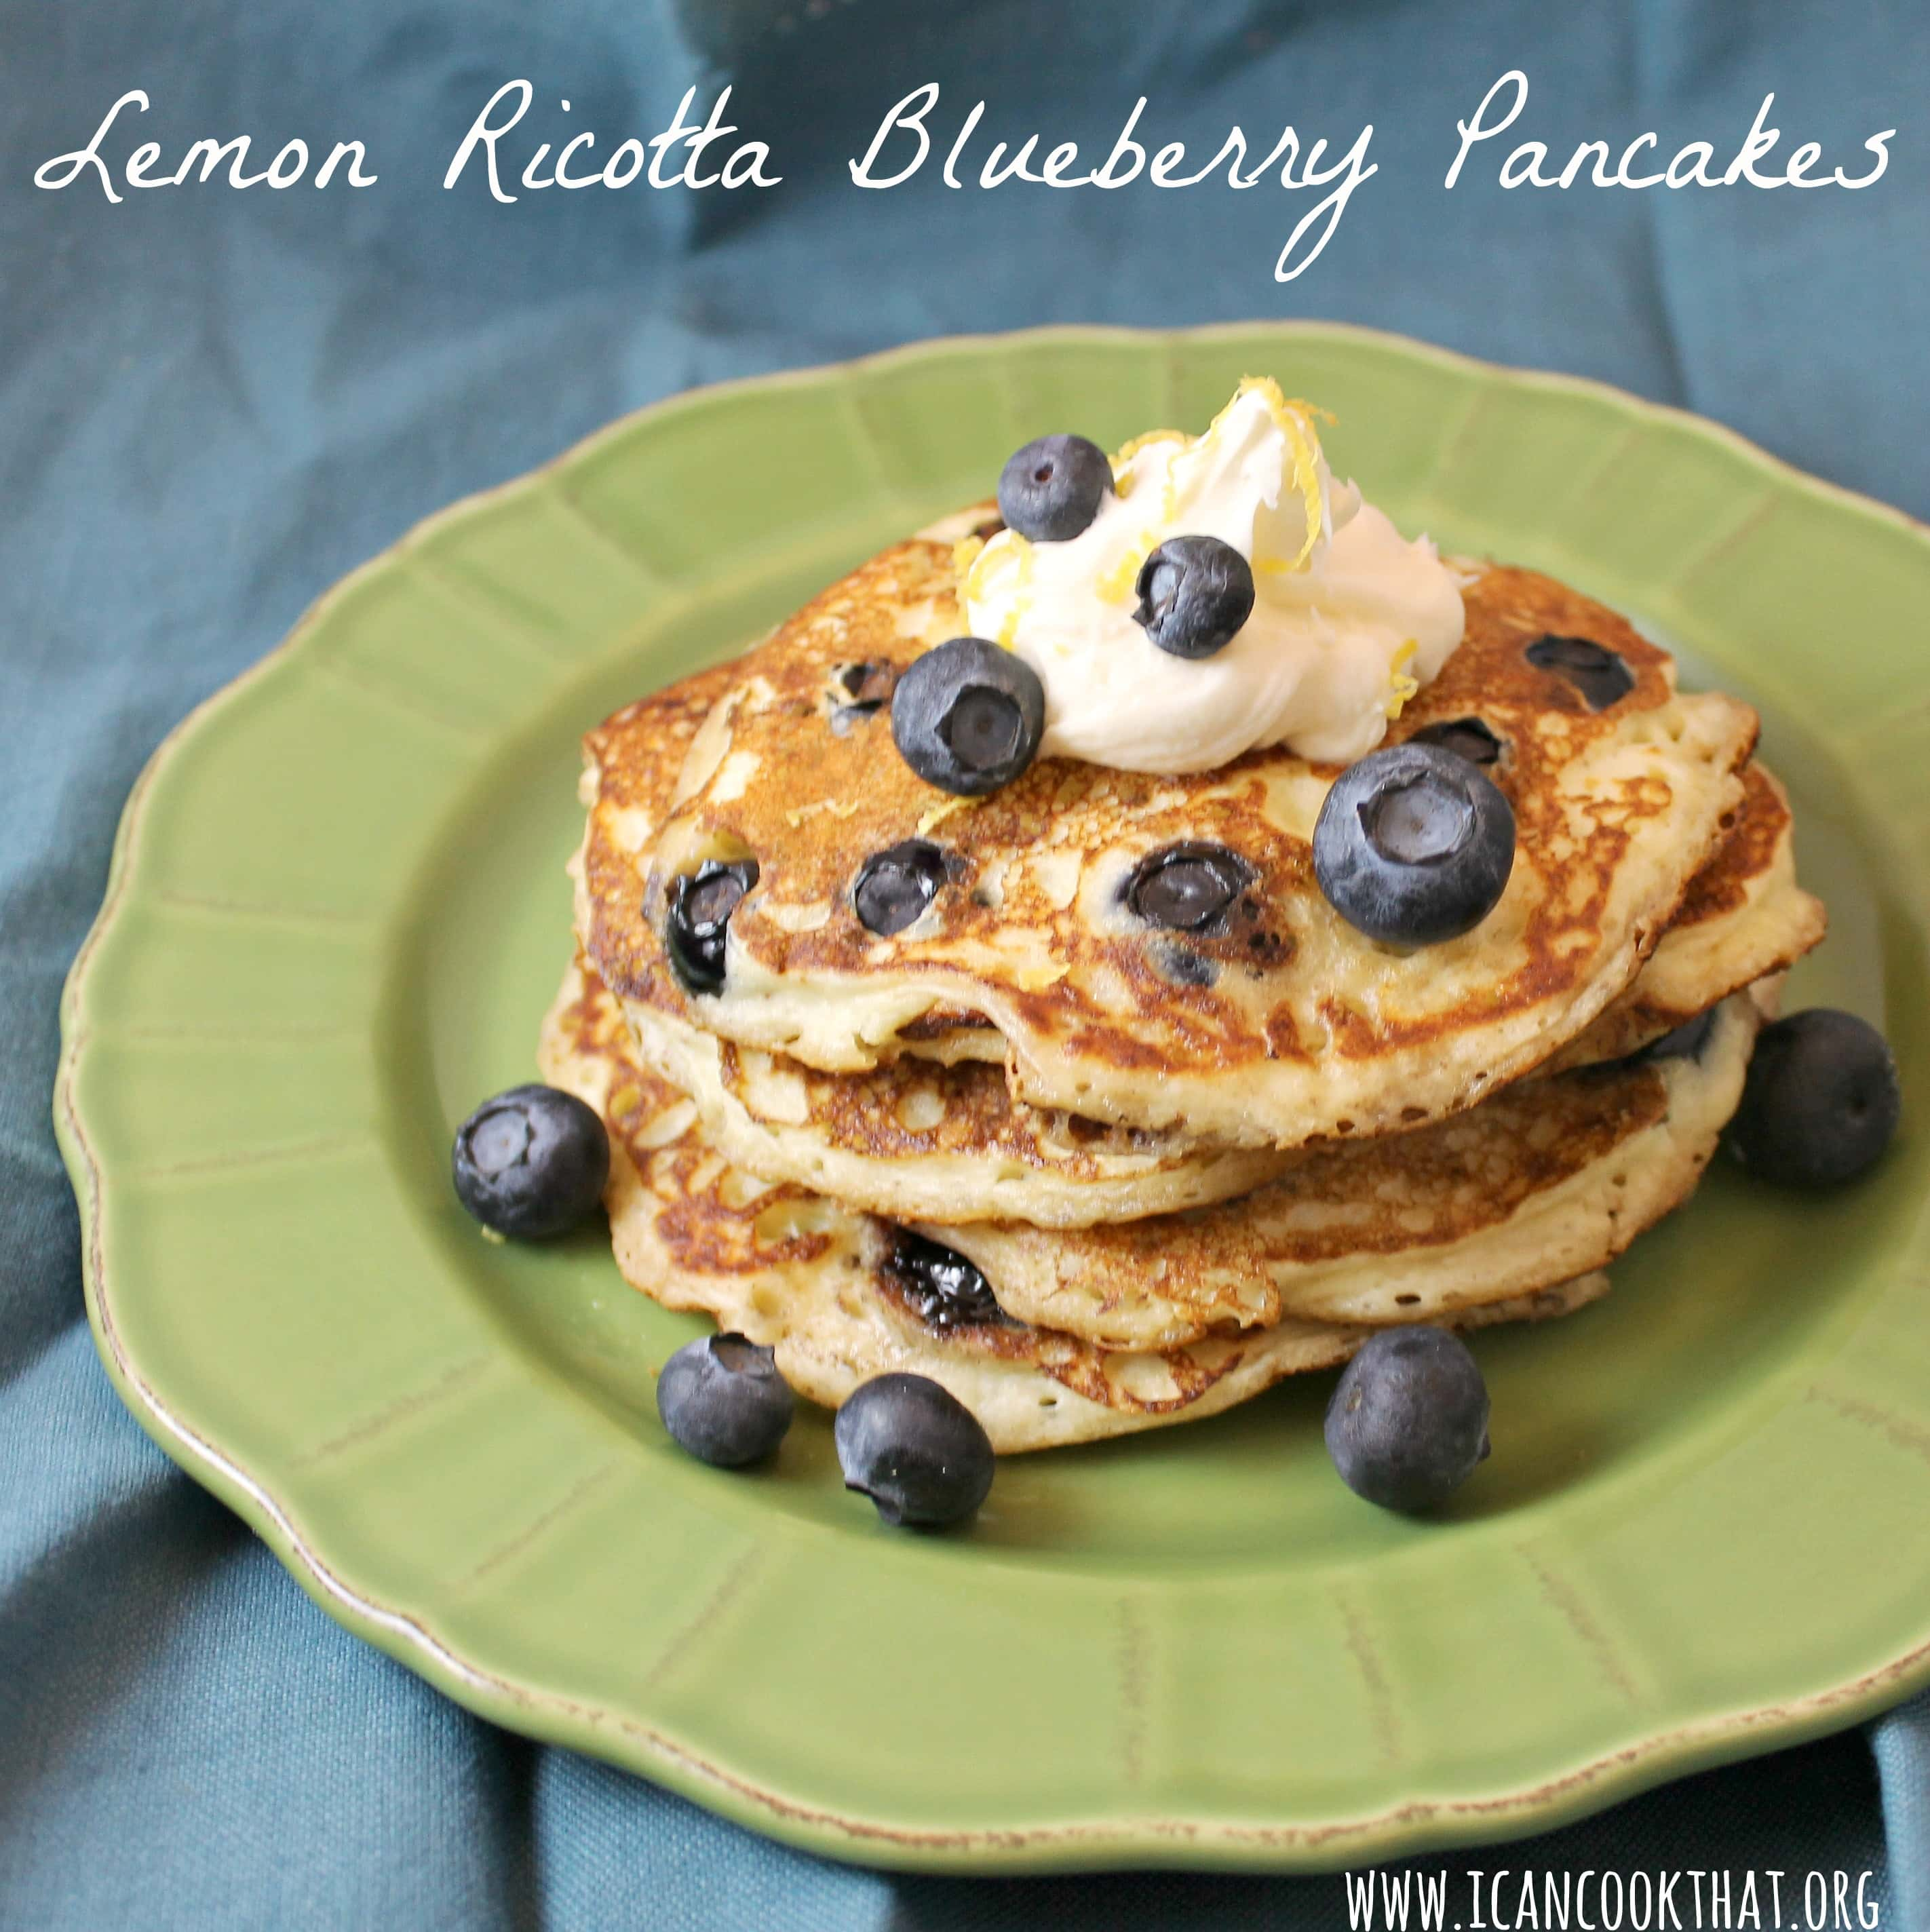 Lemon Ricotta Blueberry Pancakes Recipe | I Can Cook That